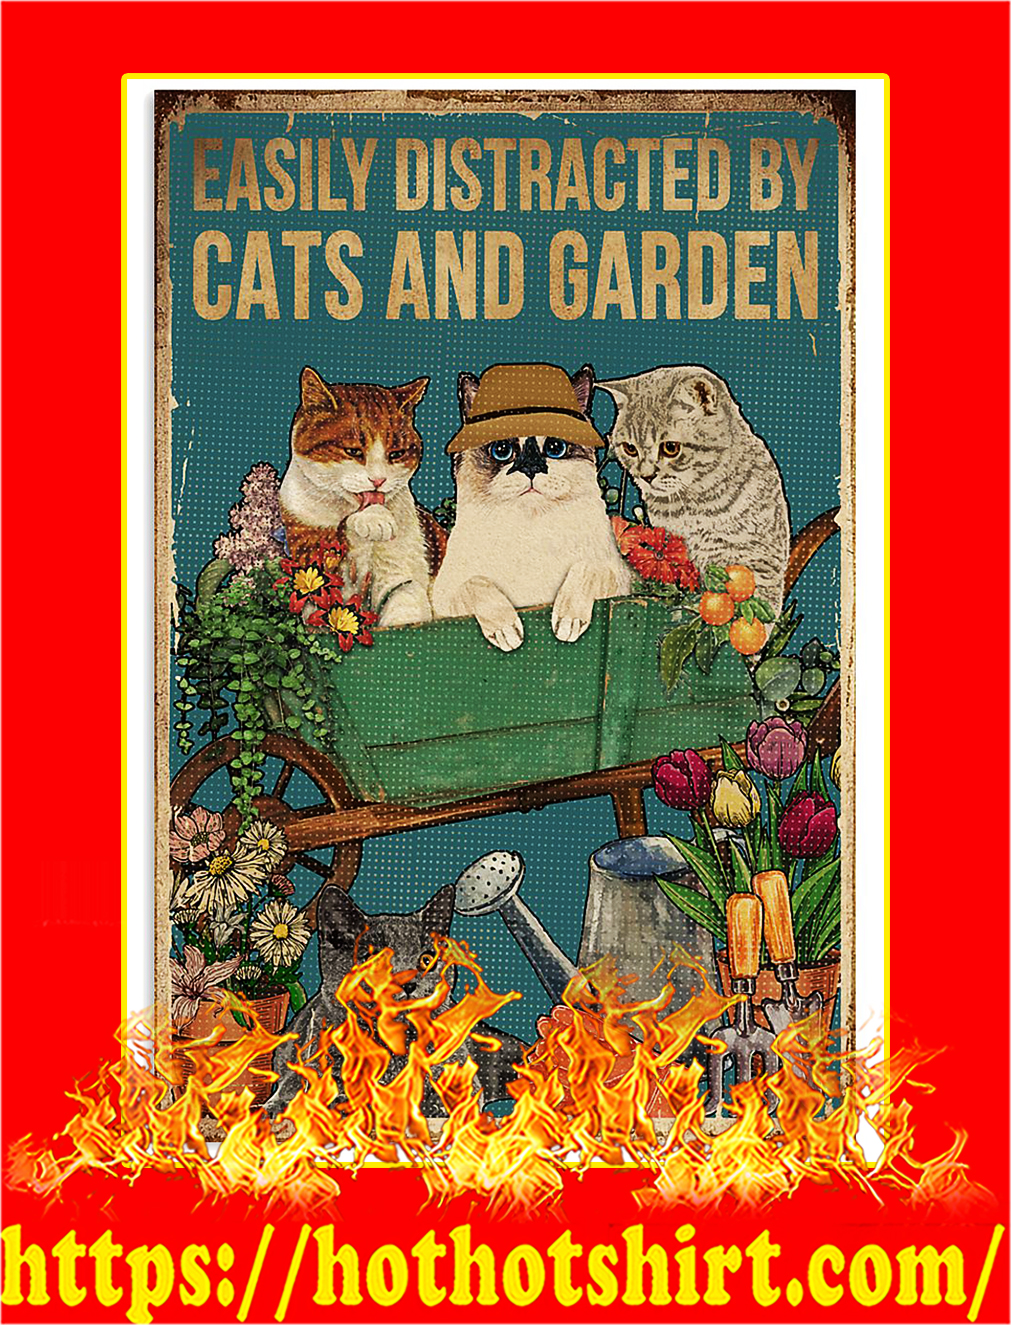 Retro Easily distracted by cats and garden poster- A4